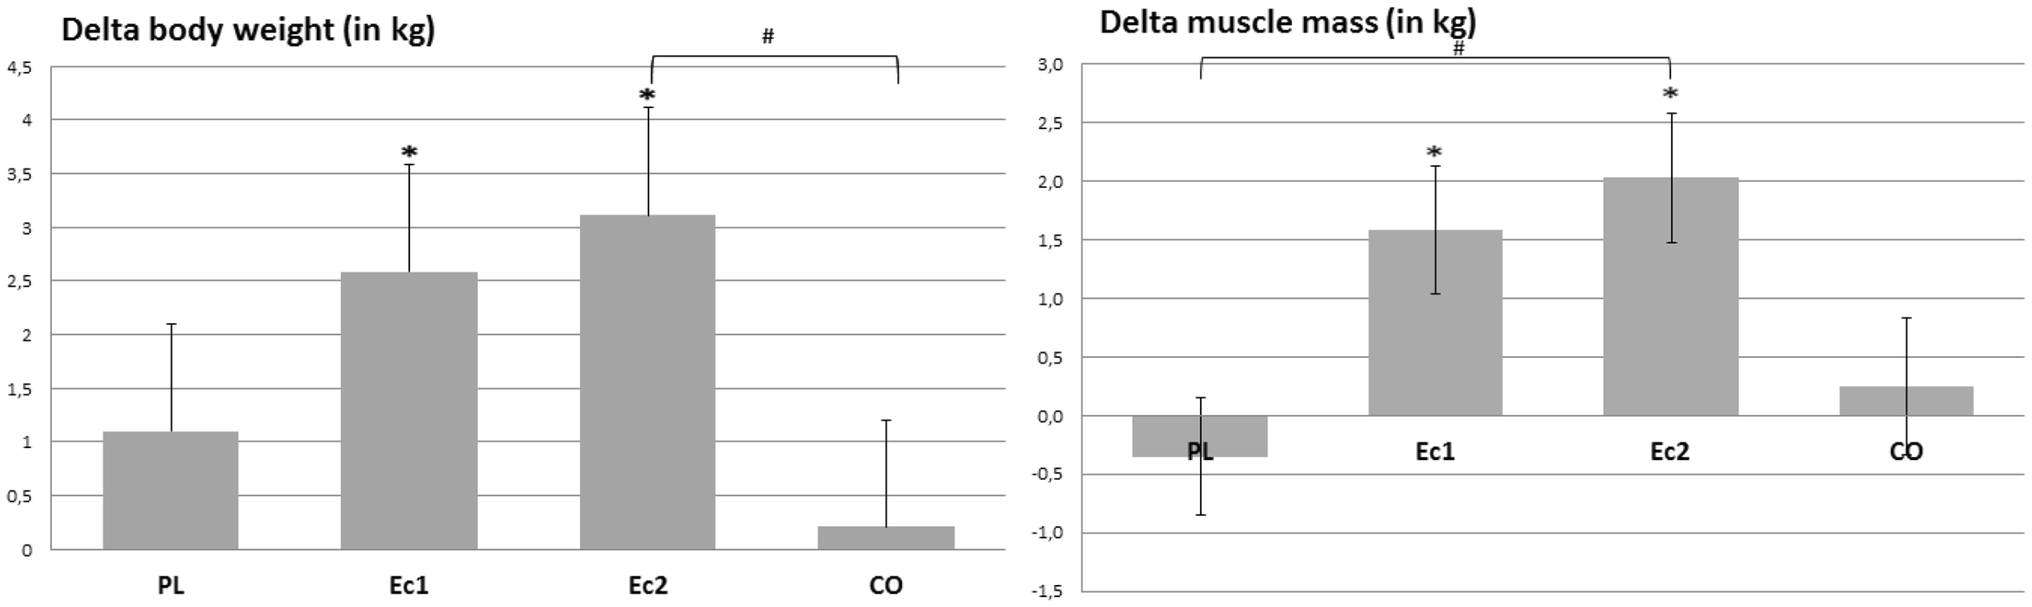 Ecdysteroids as non-conventional anabolic agent: performance